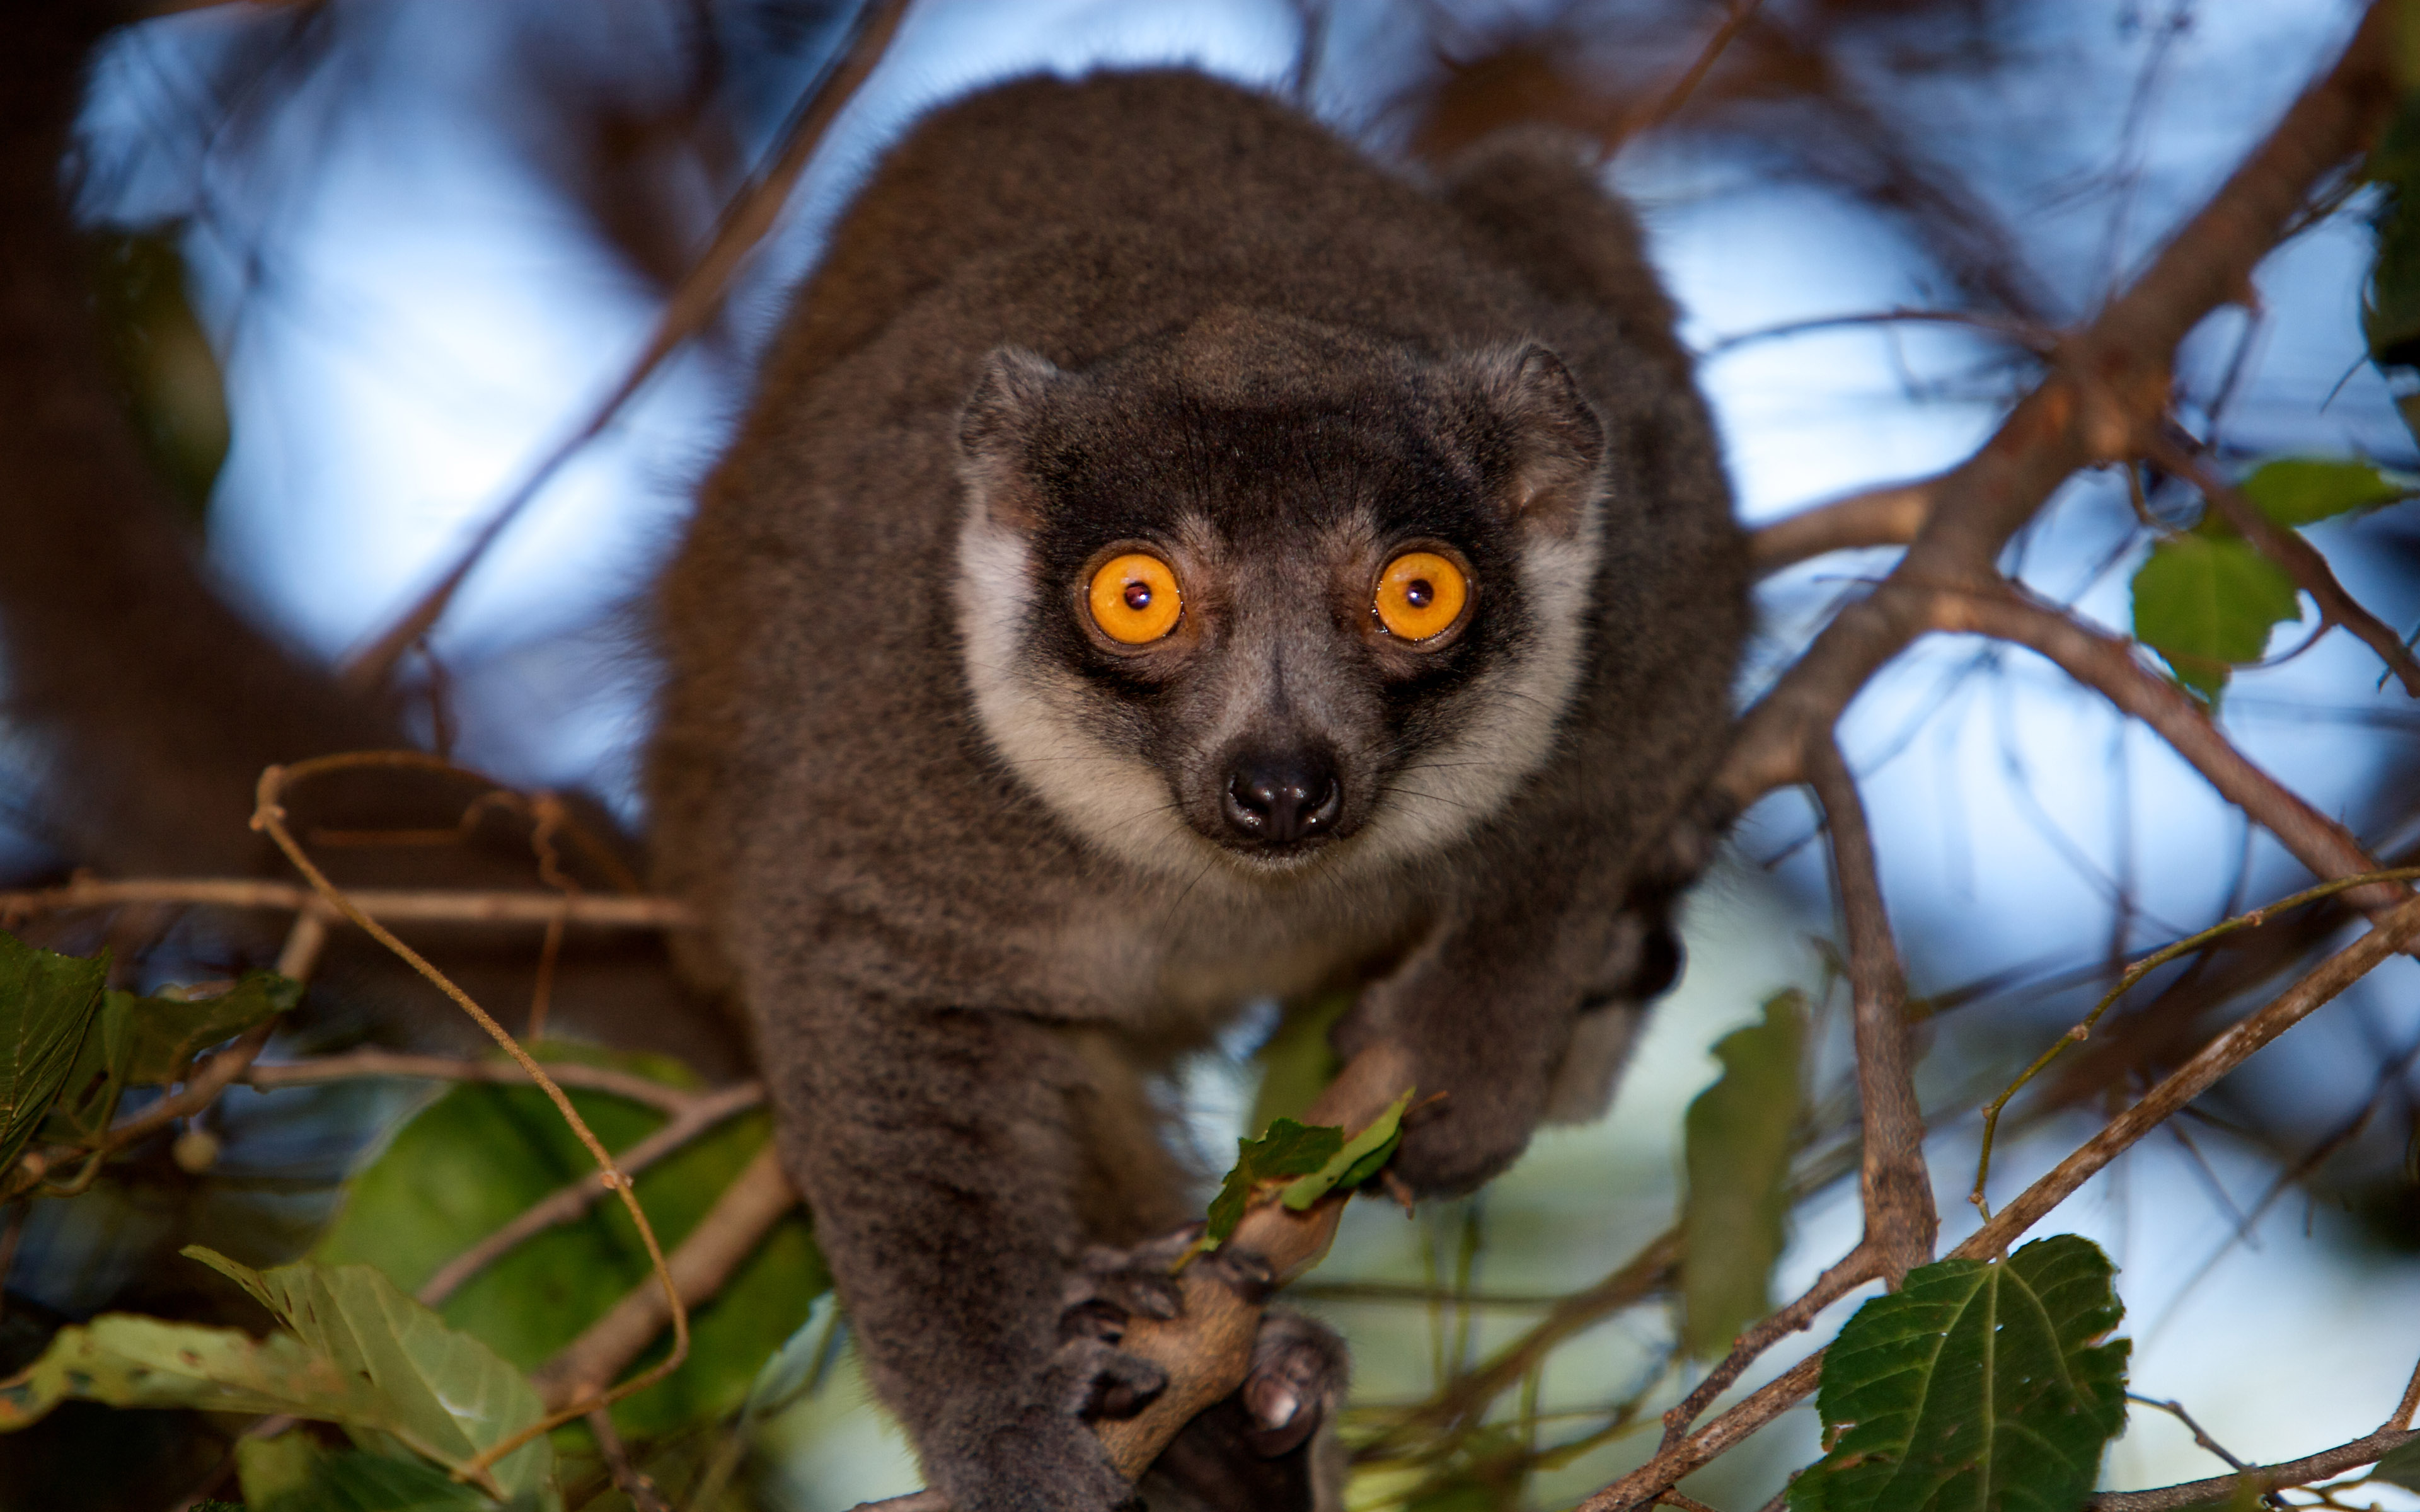 Hd Wallpapers Android Lock Screen Lemur From Madagascar Wallpaper Hd Wallpapers13 Com